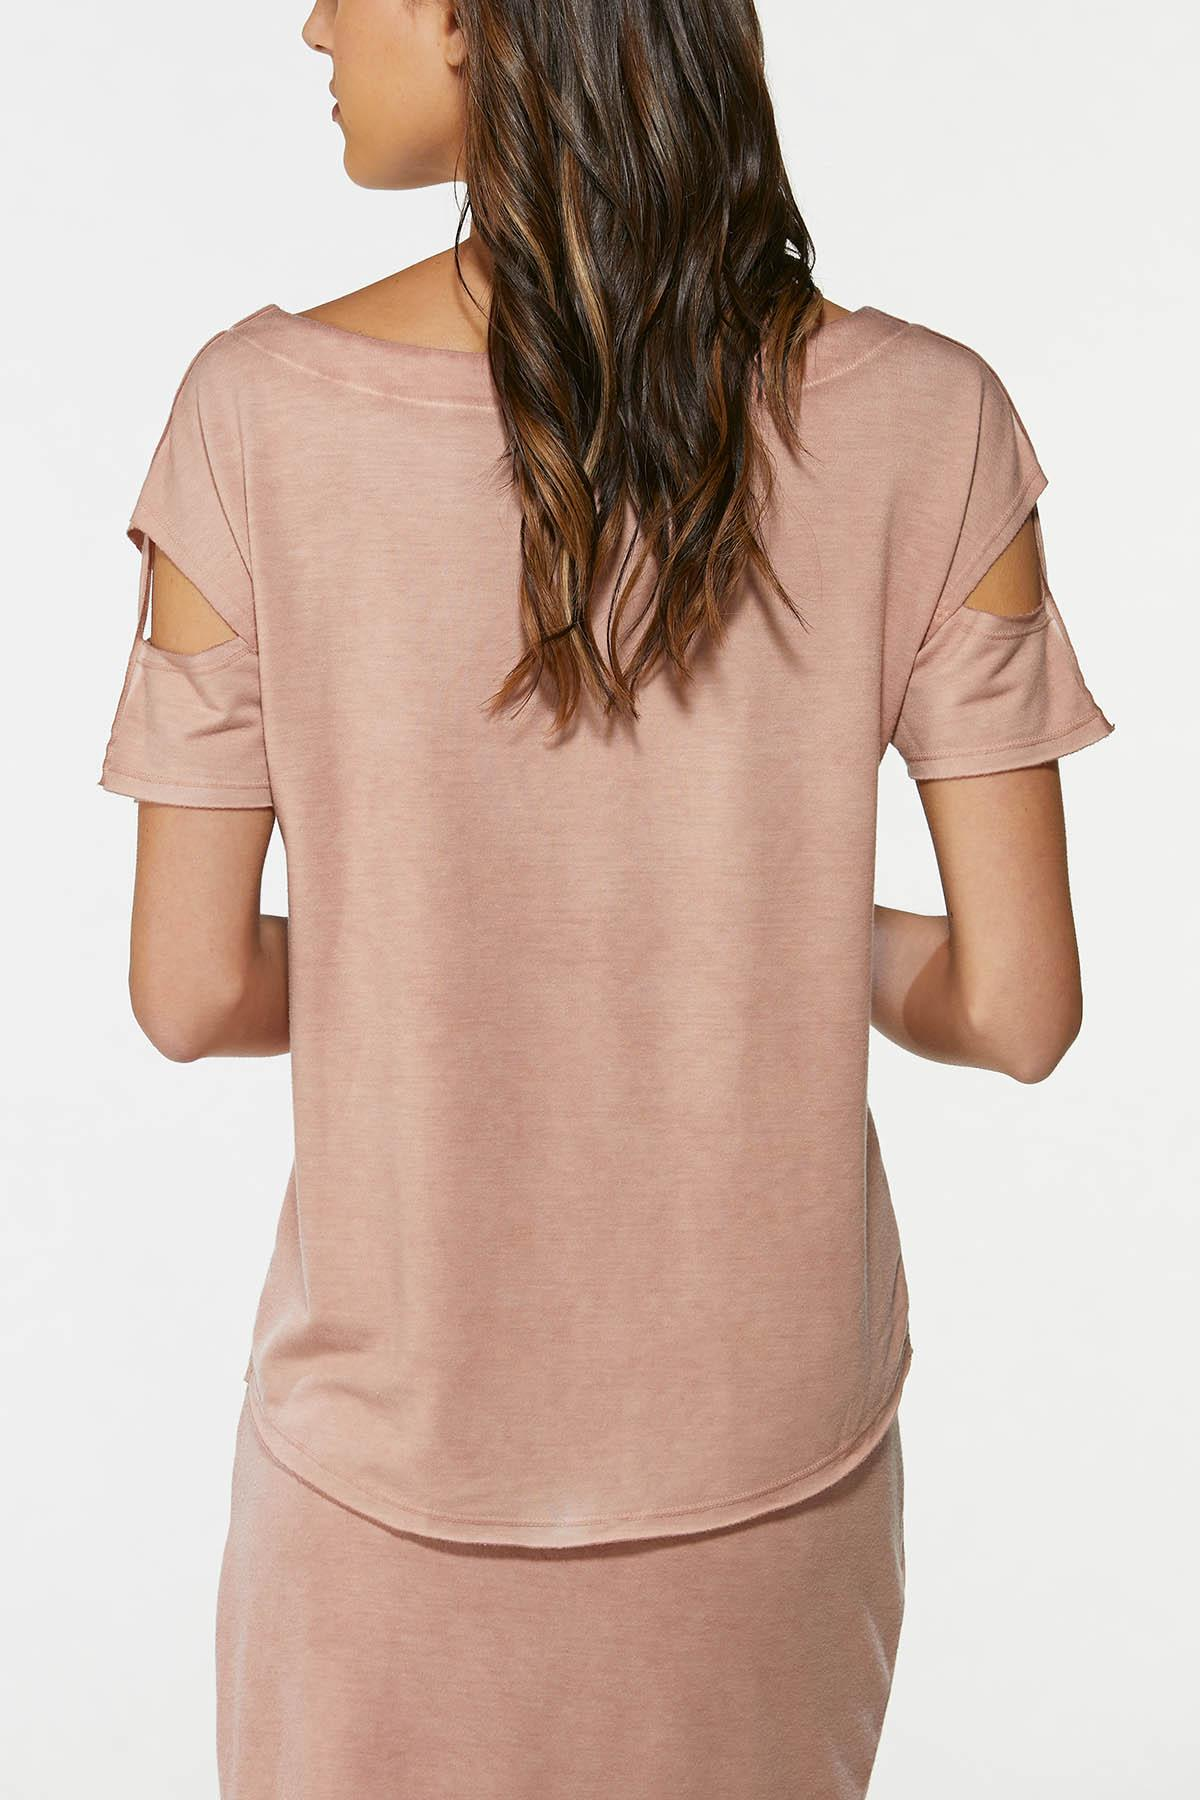 Slit Sleeve French Terry Top (Item #44661559)